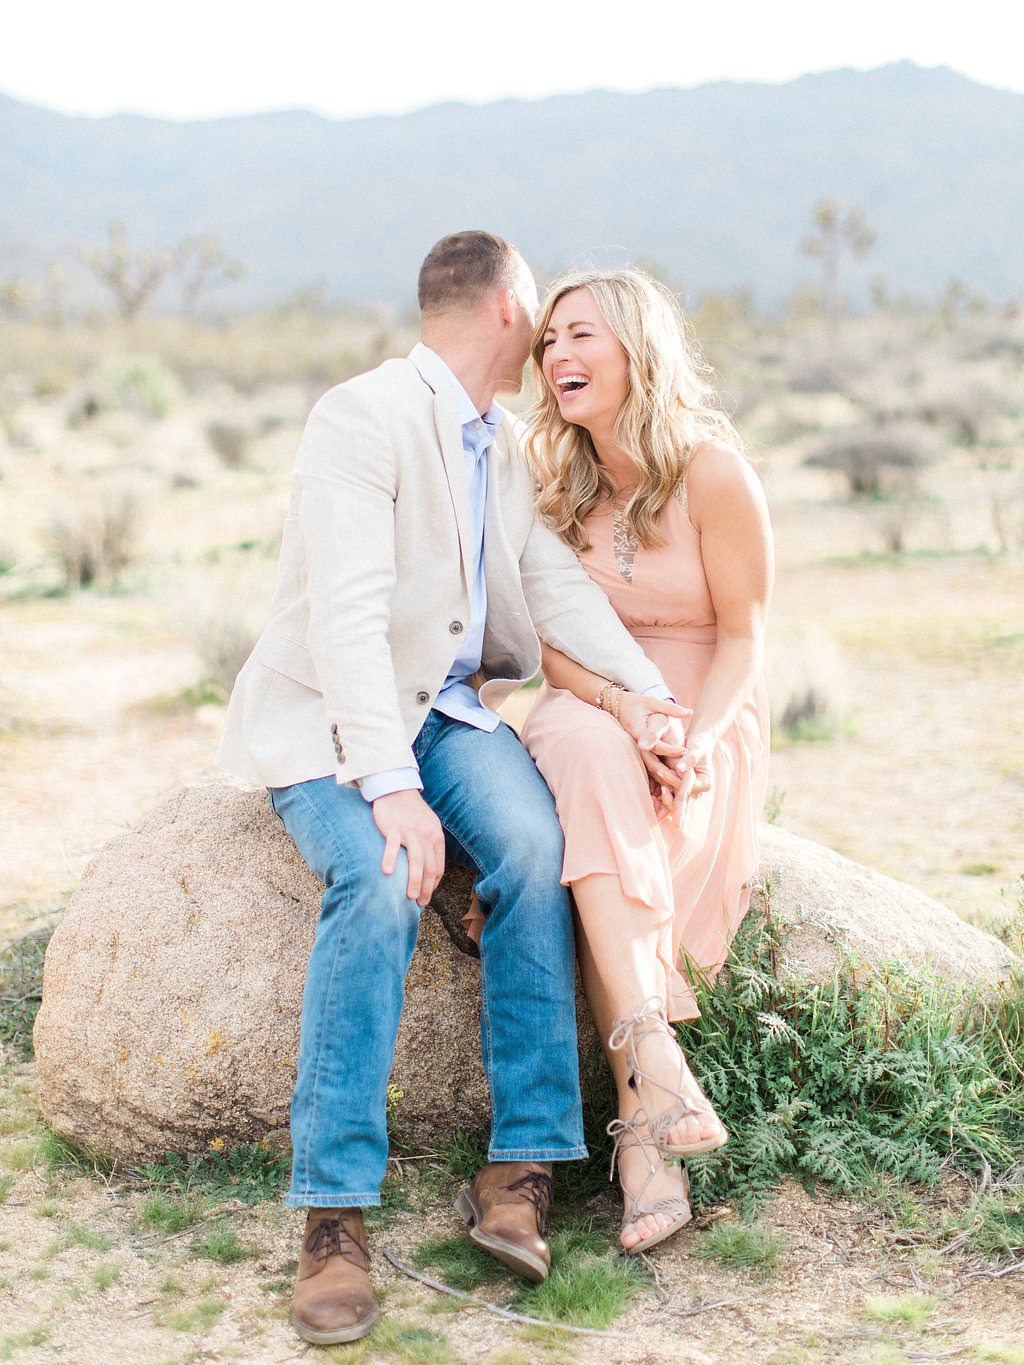 Joshua Tree Engagement Session | What to Wear for Pictures | Southern California Wedding Photographer | Mastin Labs Fuji Film | Fine Art Photographer | Desert Shoot | Laughing Shot.jpg